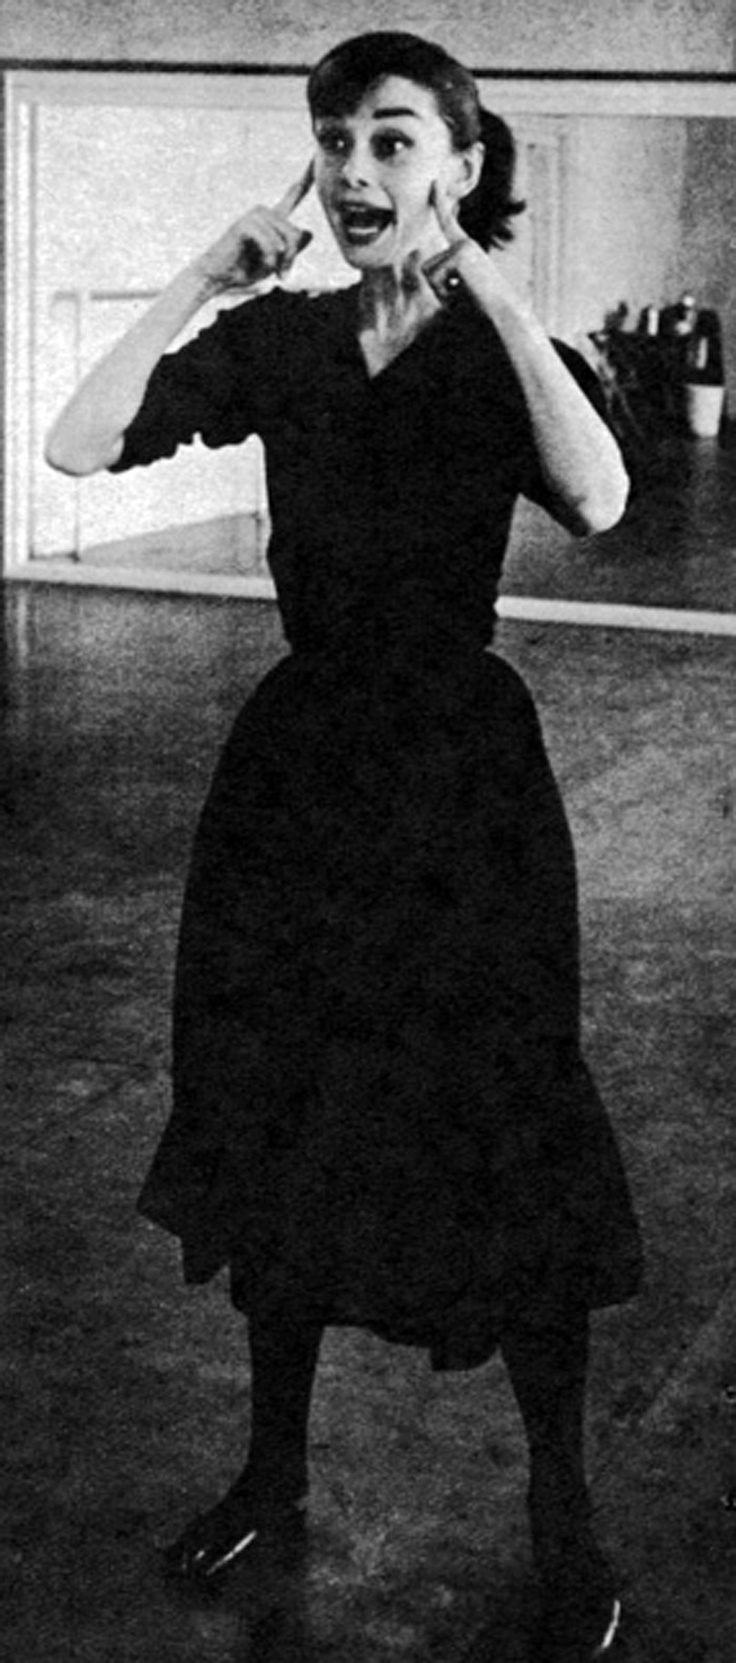 Audrey Hepburn, 1956 (Dance rehearsal for Funny Face)